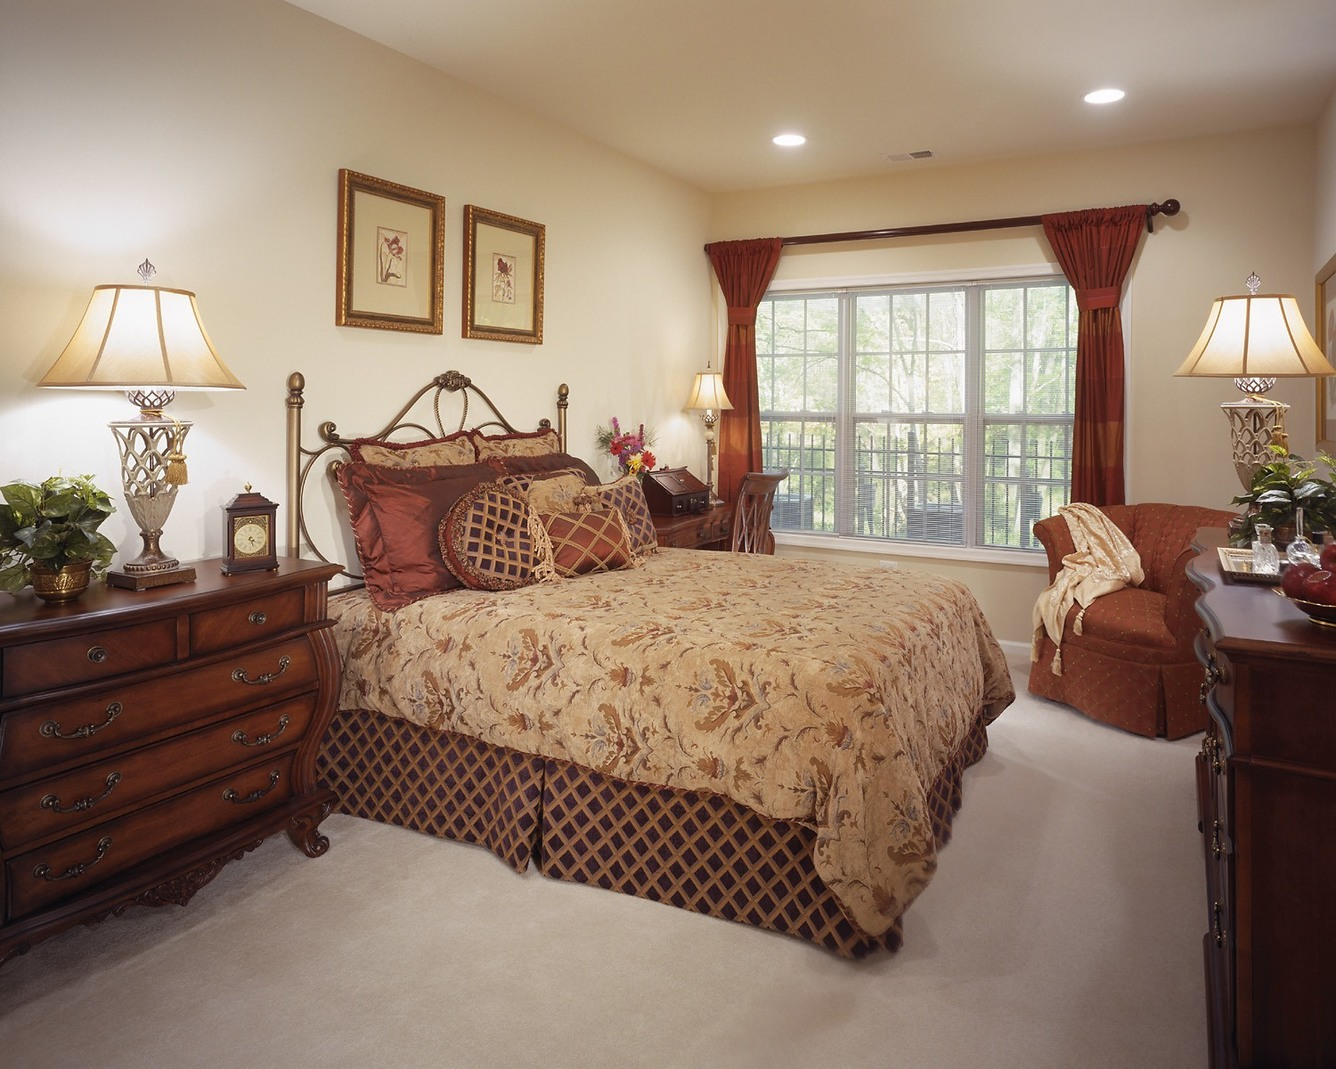 The Enclave - Elegant Bedroom